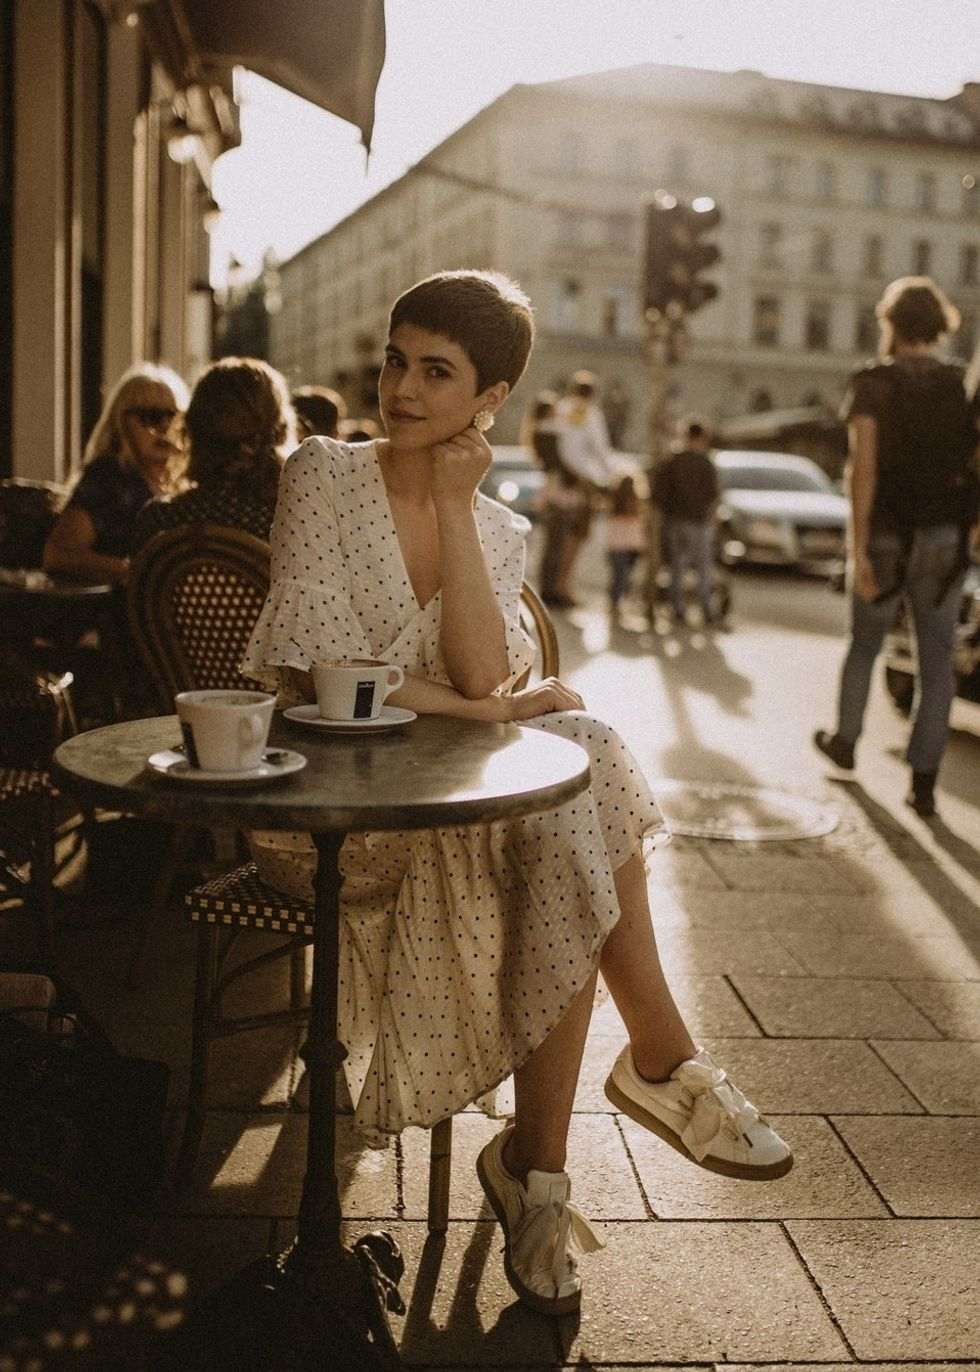 7 Reasons You Need To Start Having More Breakfast Dates